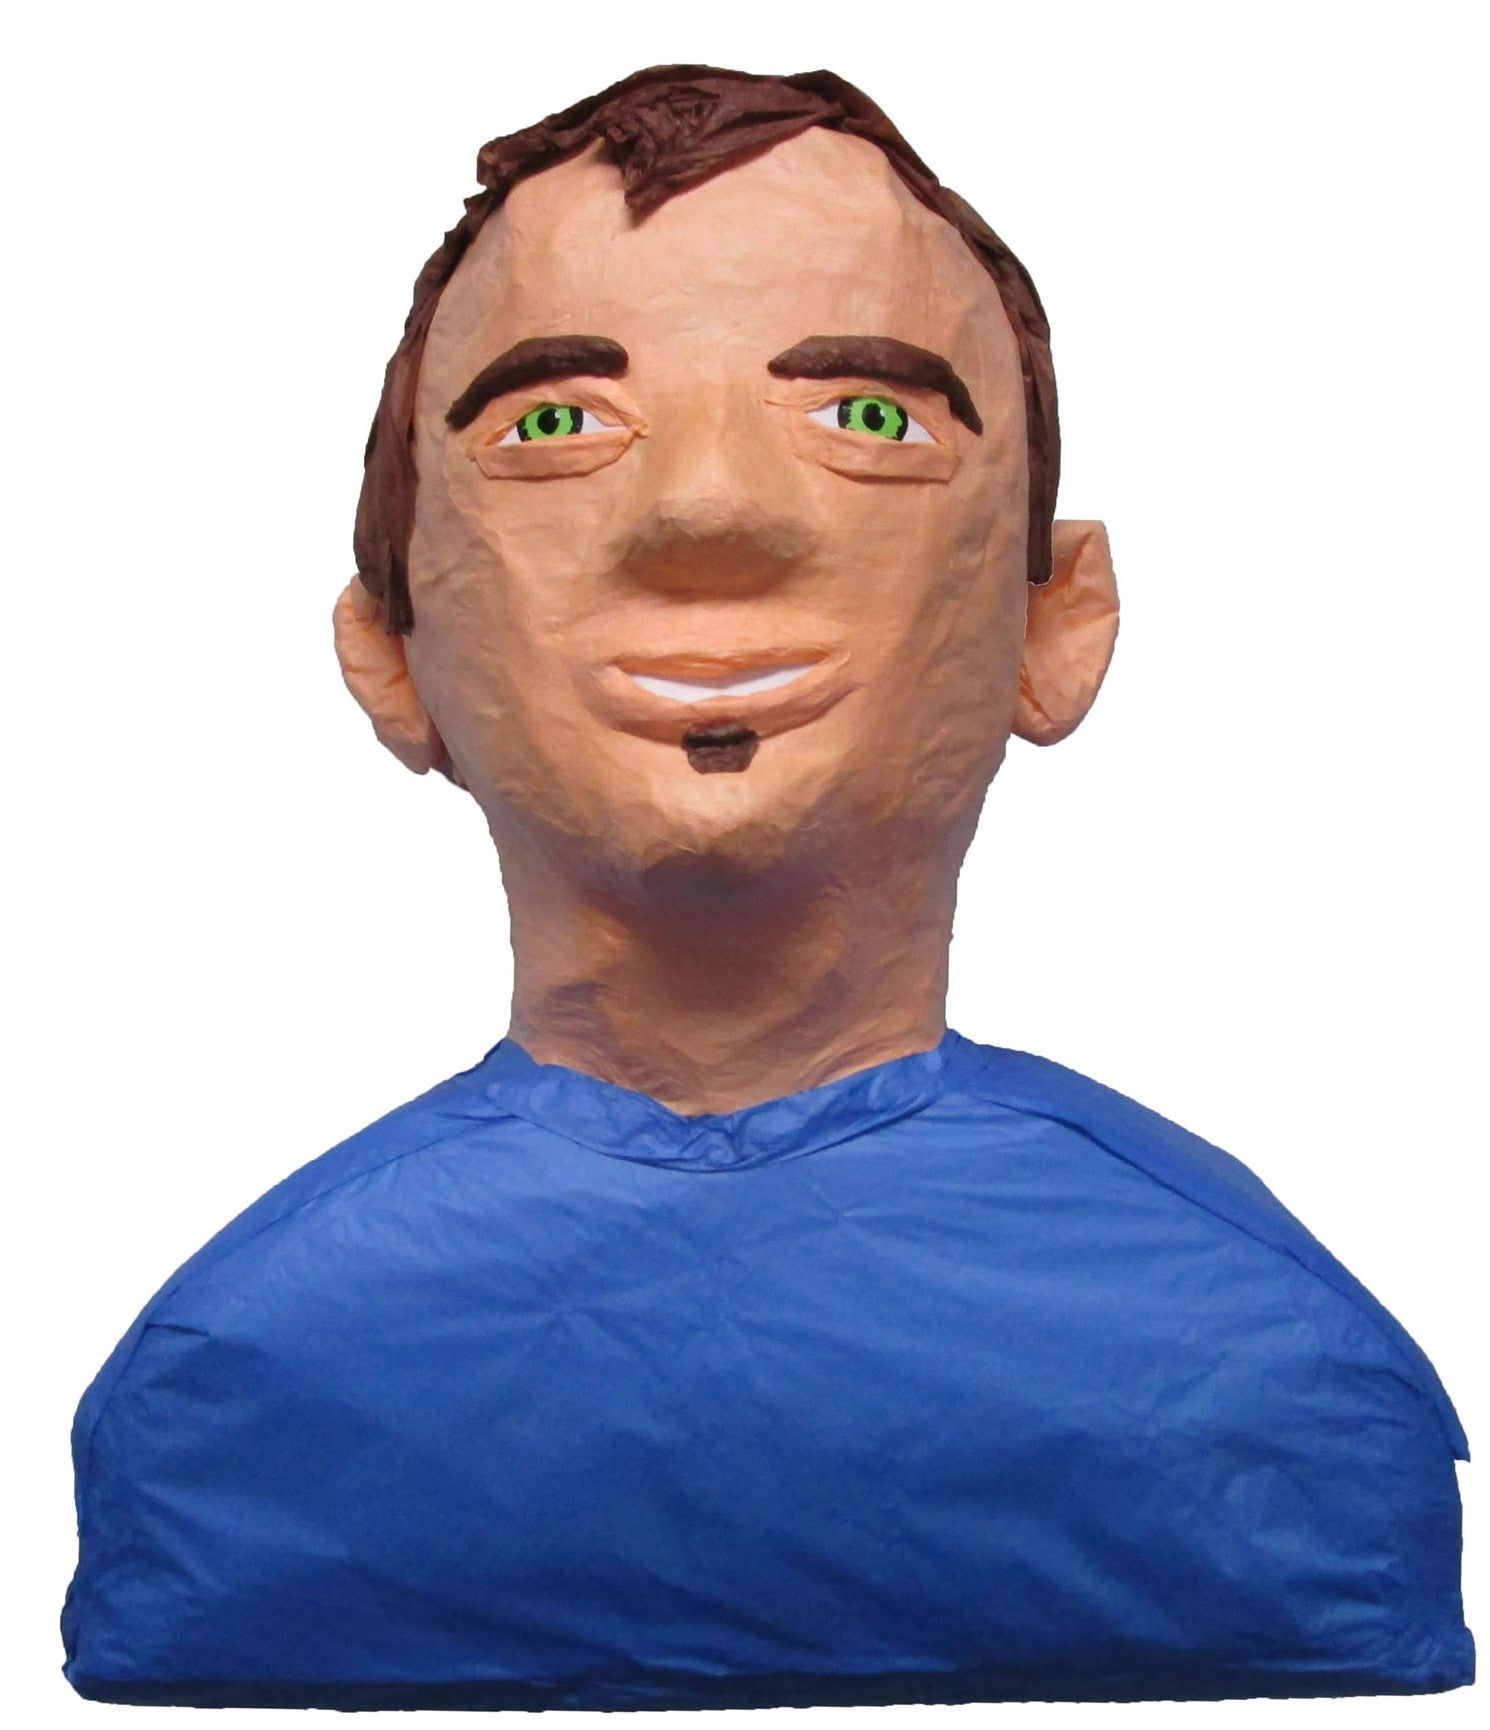 Guy in Blue Shirt Custom Pinata